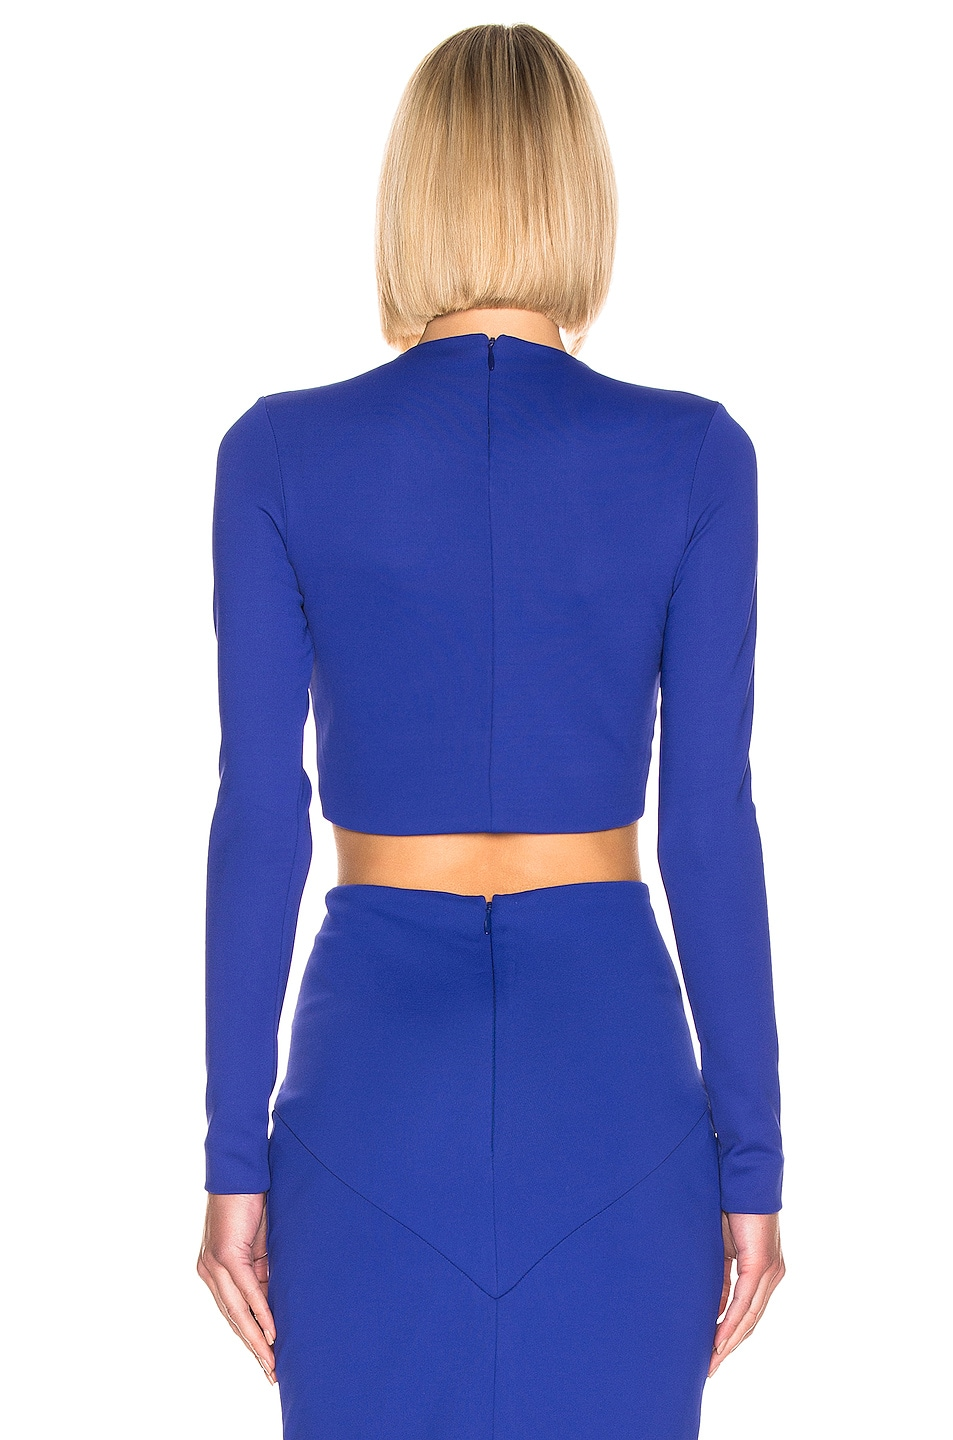 Image 3 of Haider Ackermann Cropped Top in Mankora Blue